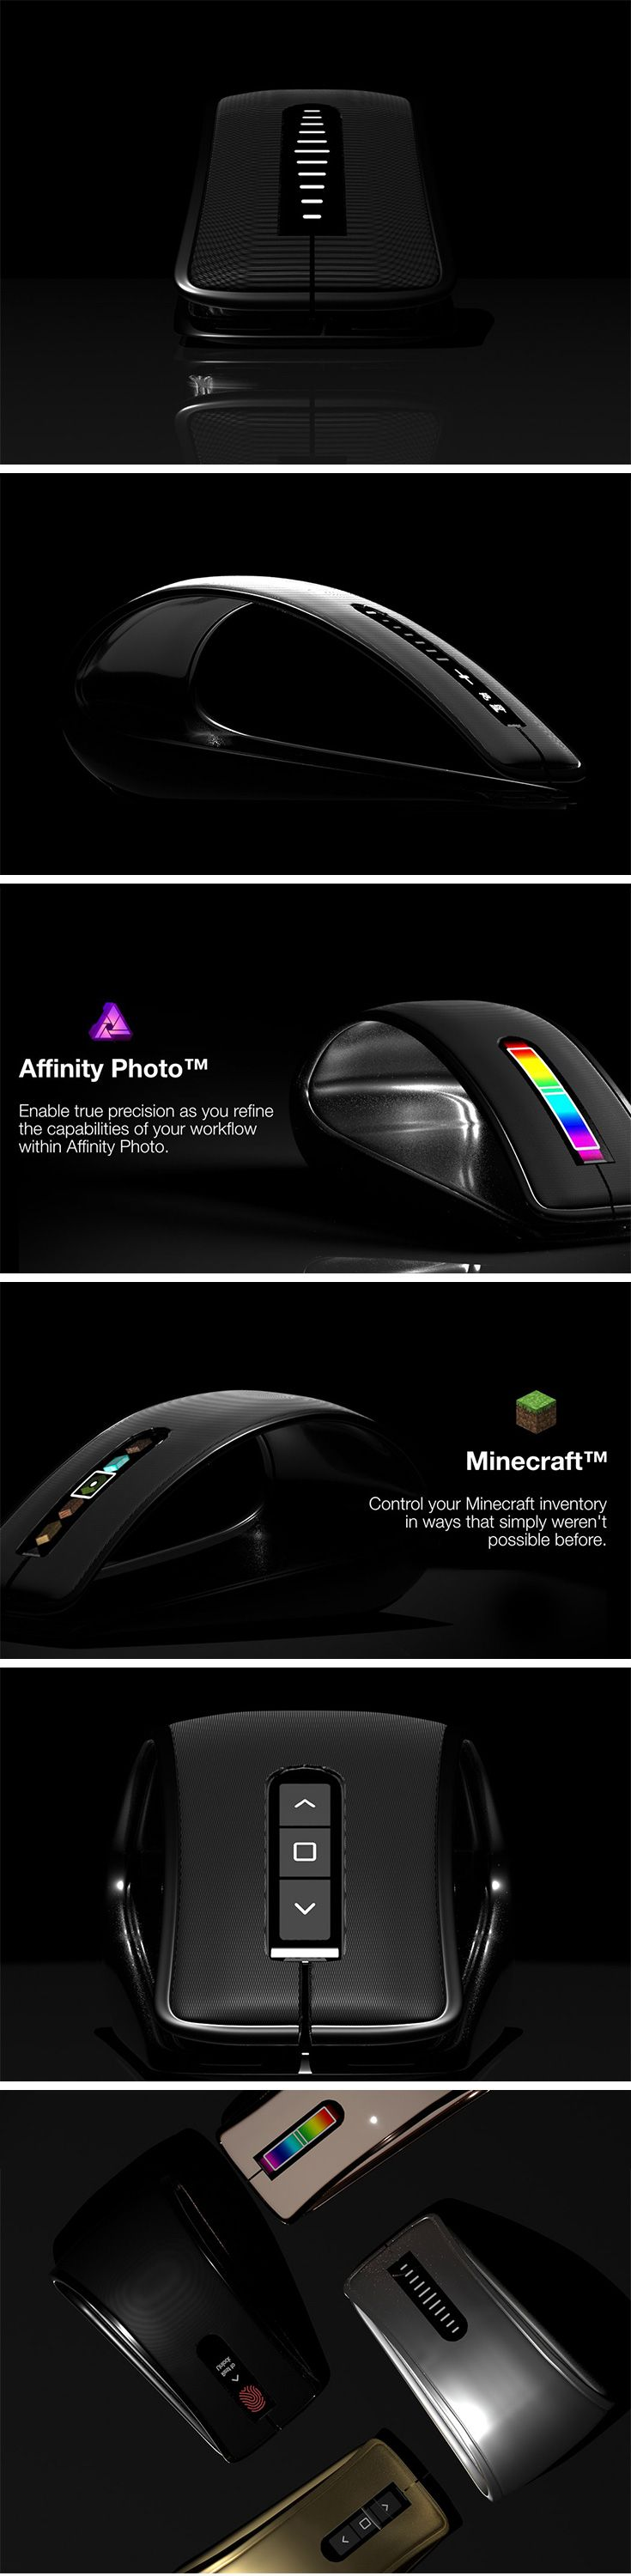 Those who aim for productivity will appreciate the Volatas mouse. Located directly on the wireless mouse's large surface, there is a scrolling screen that allows for contextual shortcuts in a variety of applications. Resizing, highlighting, switching between tools, you name it!